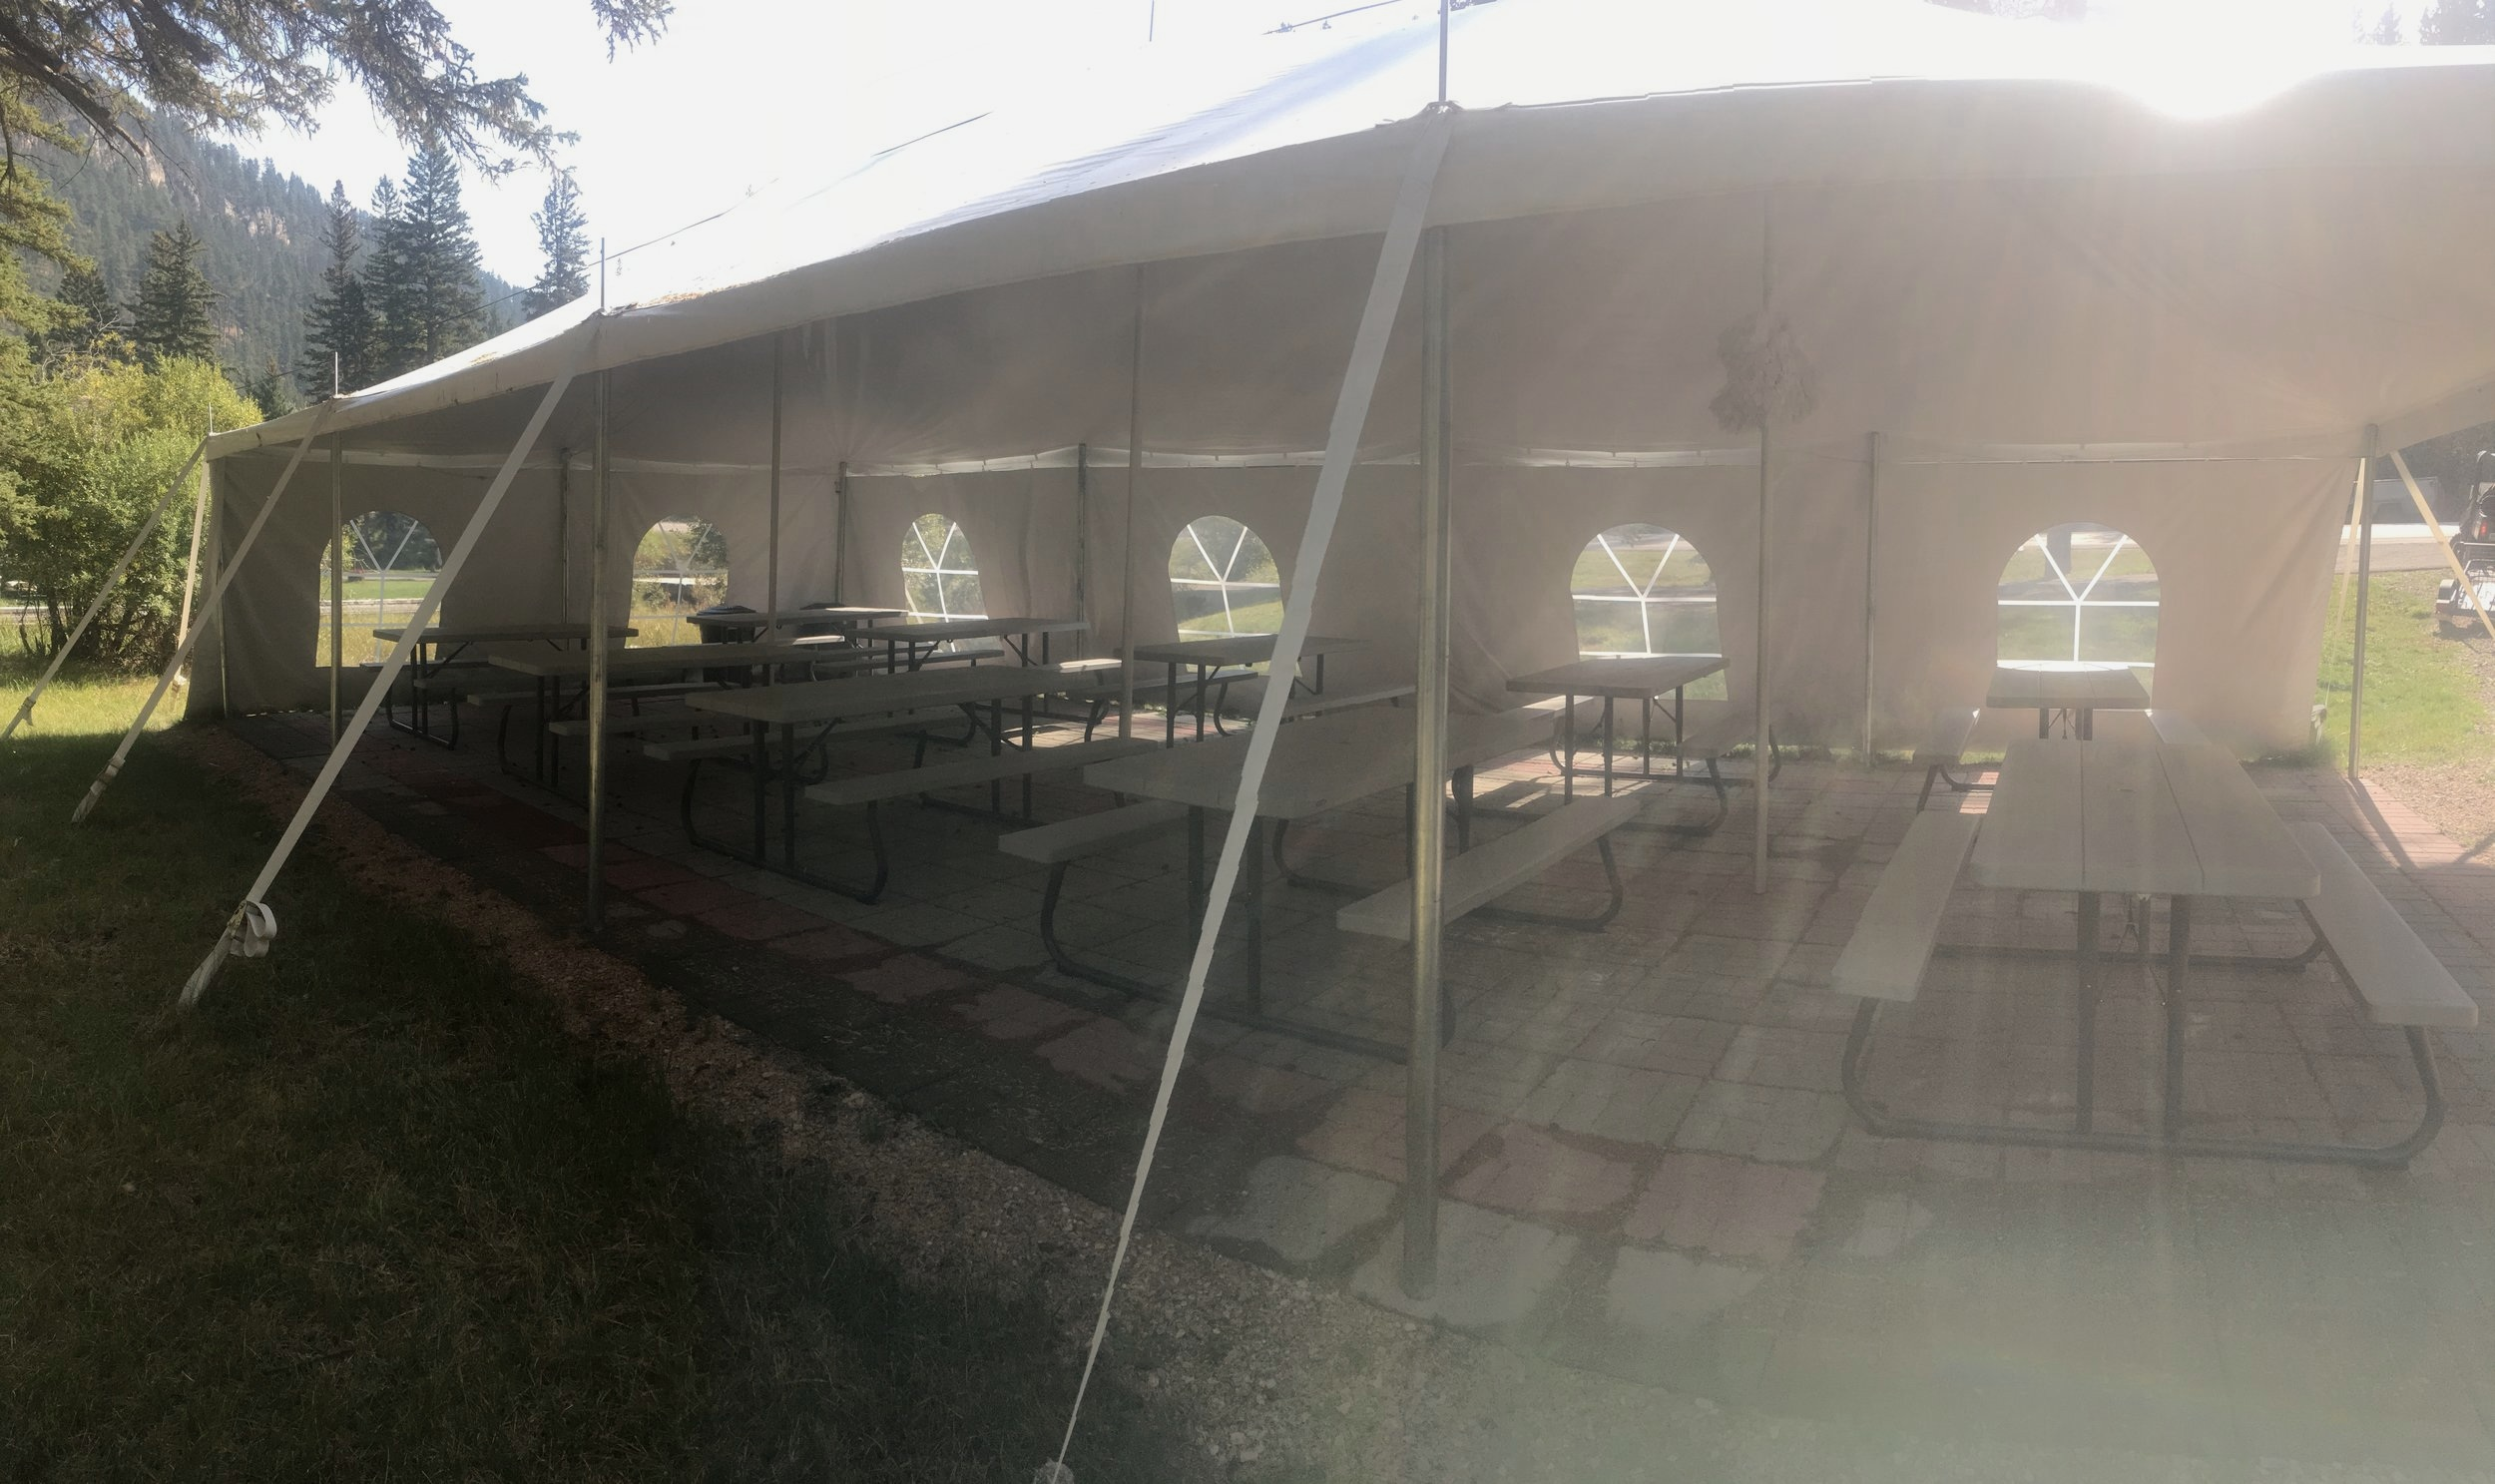 Did someone say party? Our creek side tent is another great option for a birthday party, reunion or wedding. Complete with lighting and 10 picnic tables this is a great little area to relax and hang out.